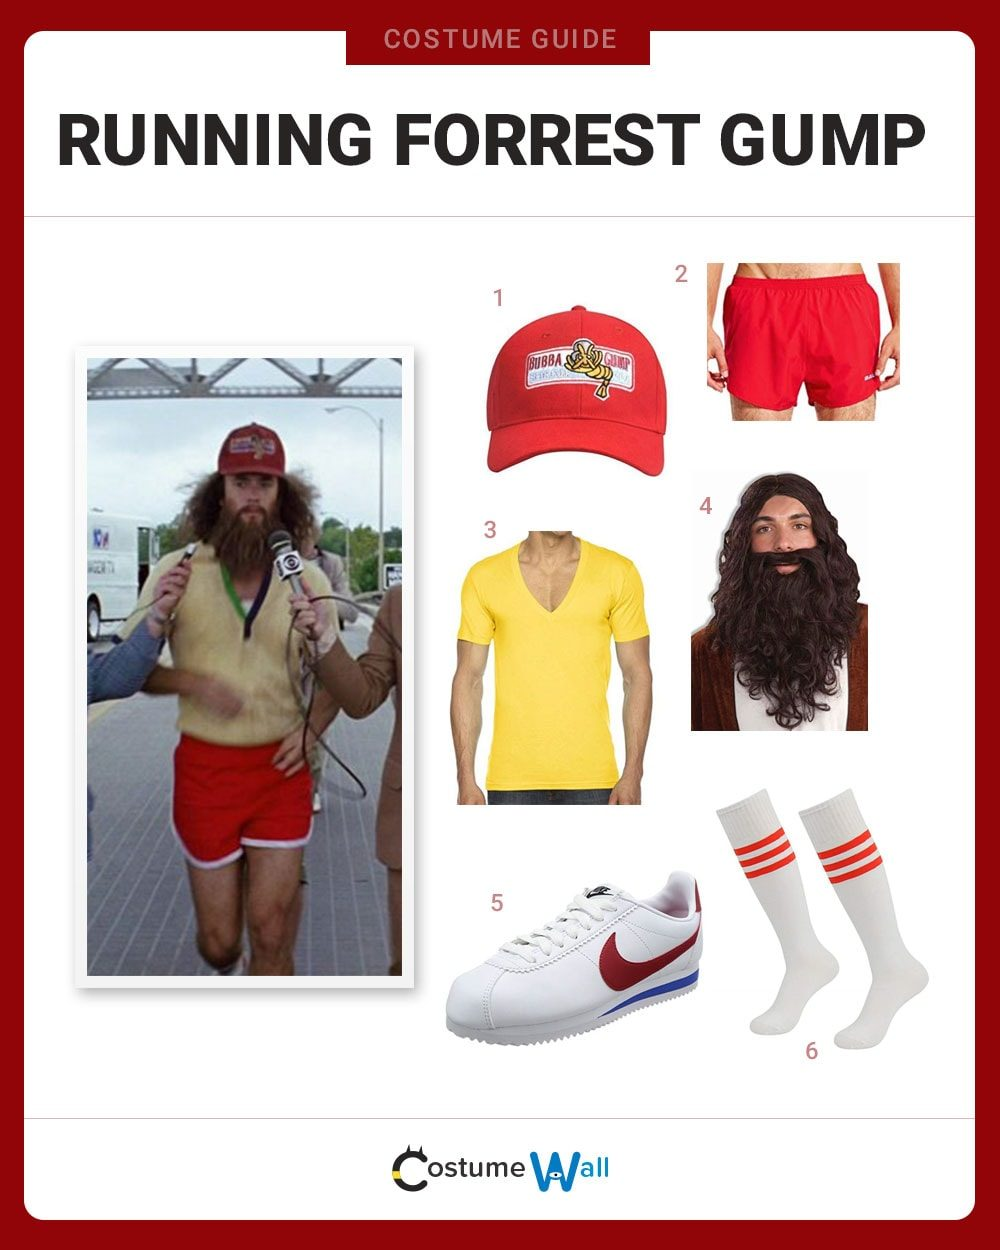 Running Forrest Gump Costume Guide